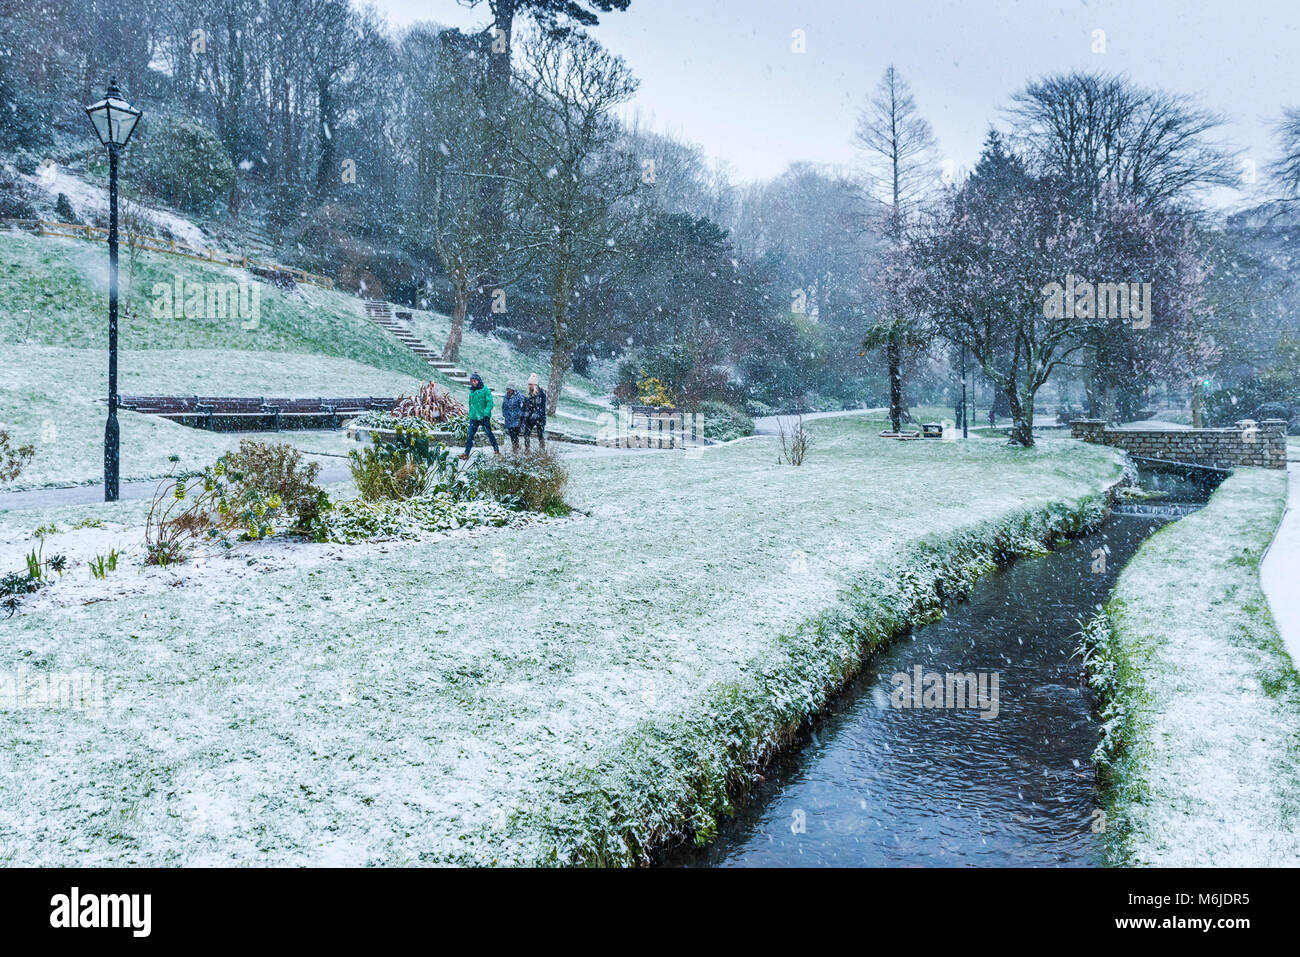 Falling snow in Trenance Gardens in Newquay Cornwall. - Stock Image